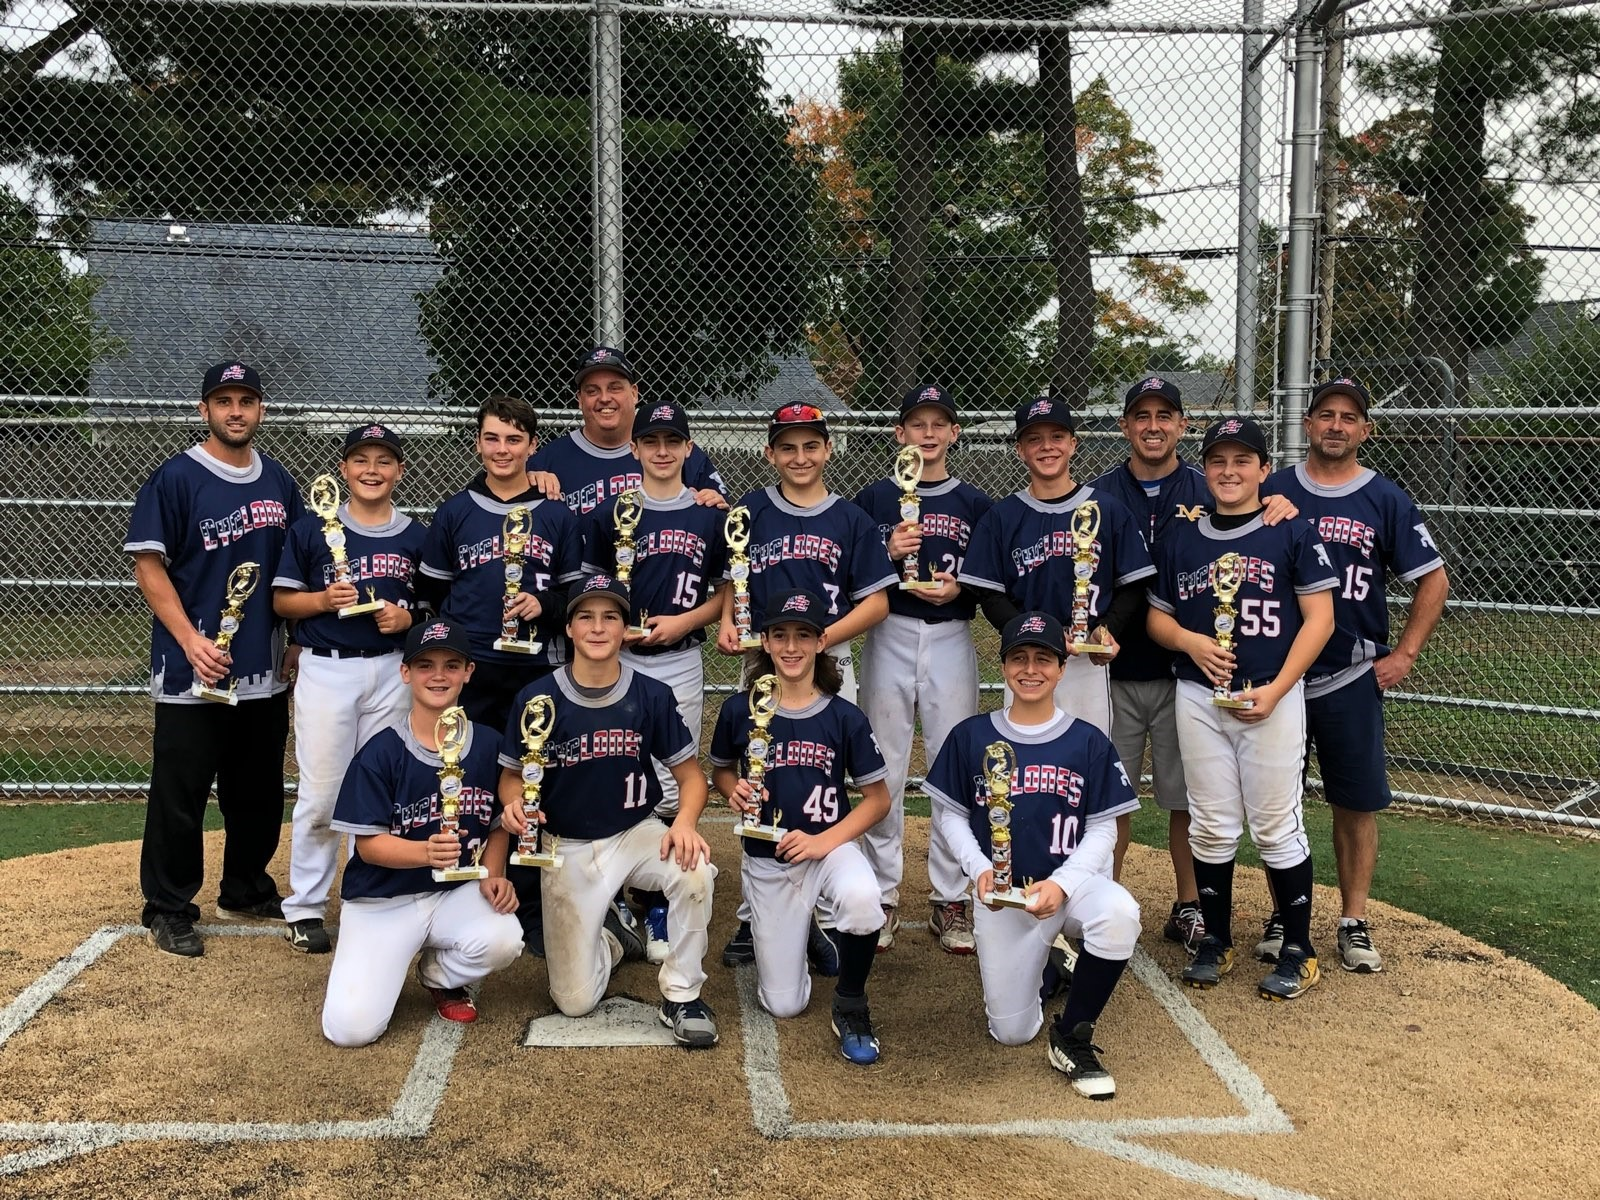 13u American Columbus Day Champs!